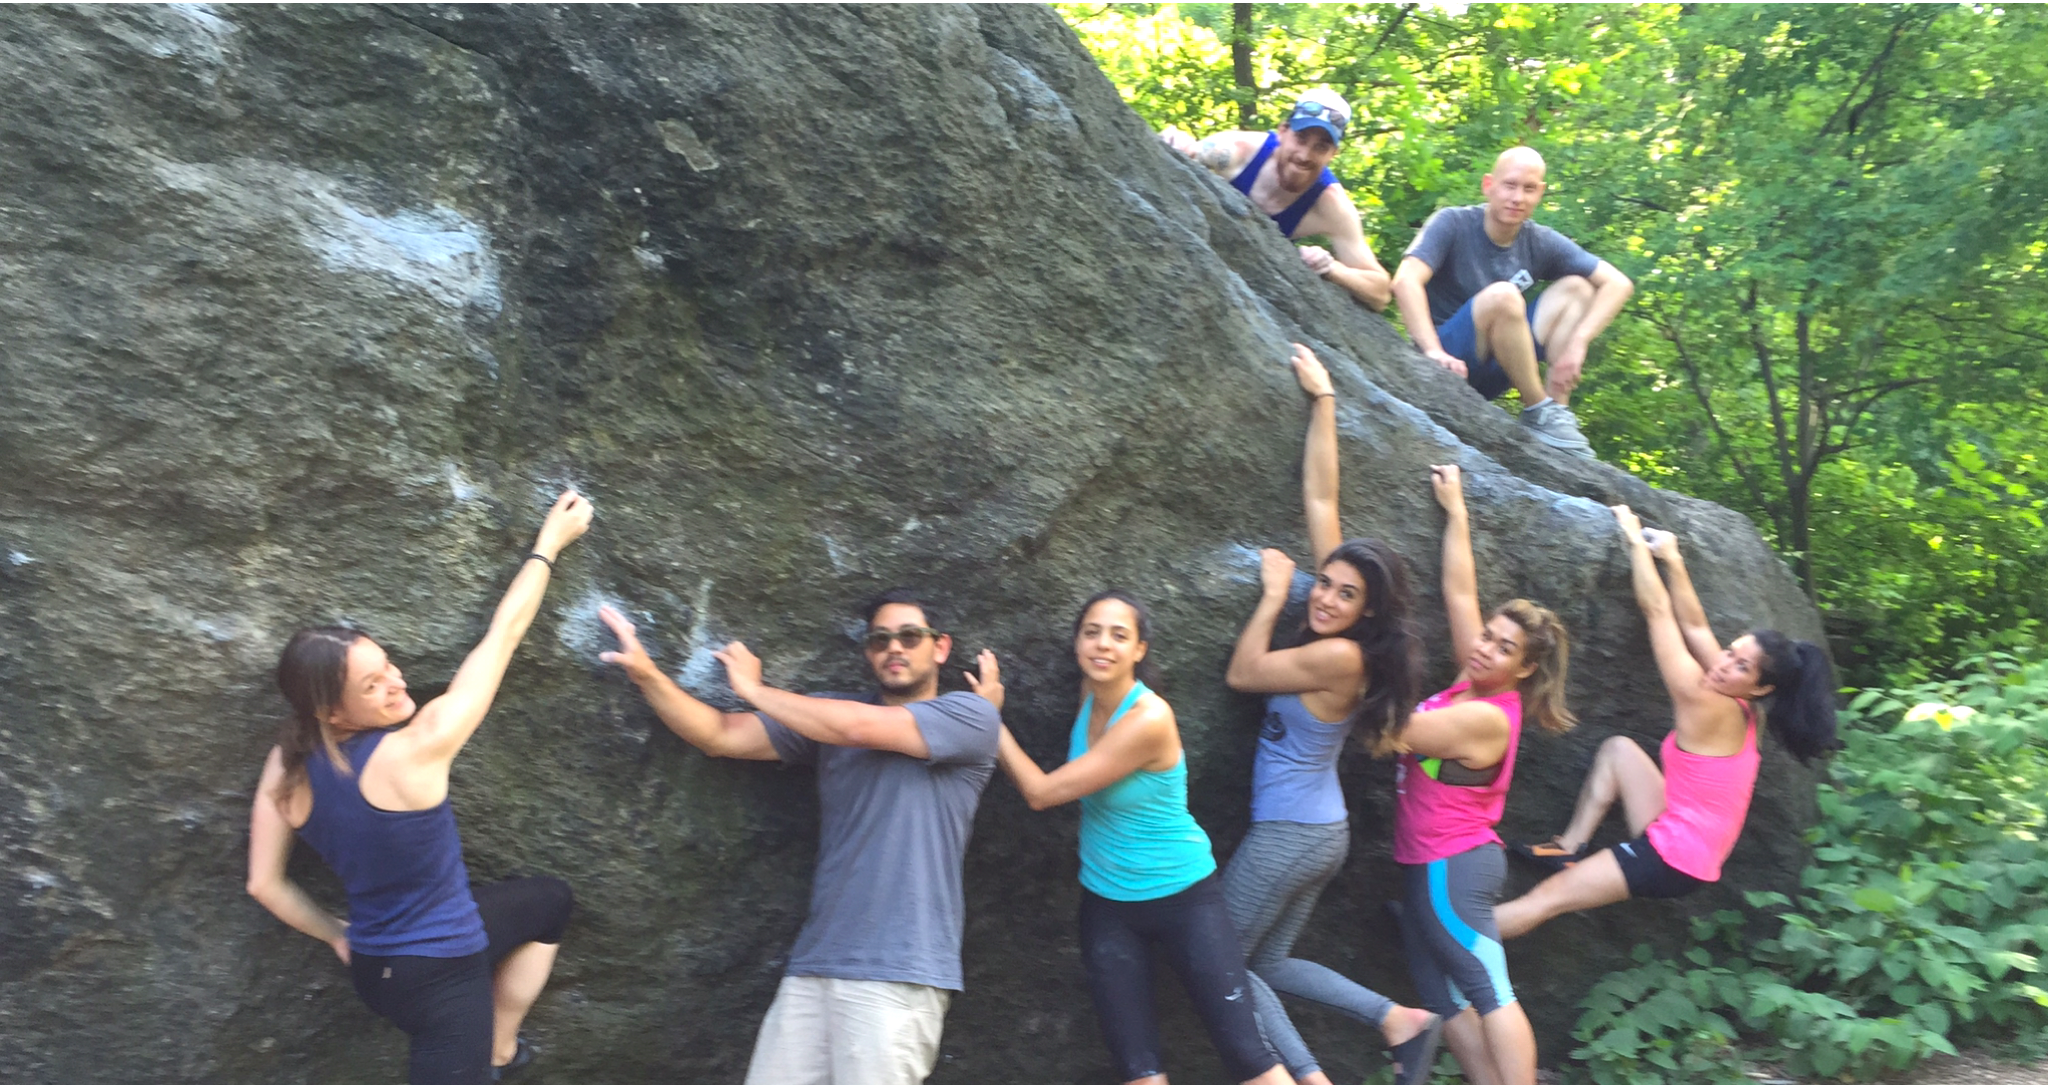 Climbing in Central Park at OutdoorFest 2015 by Tun Khine